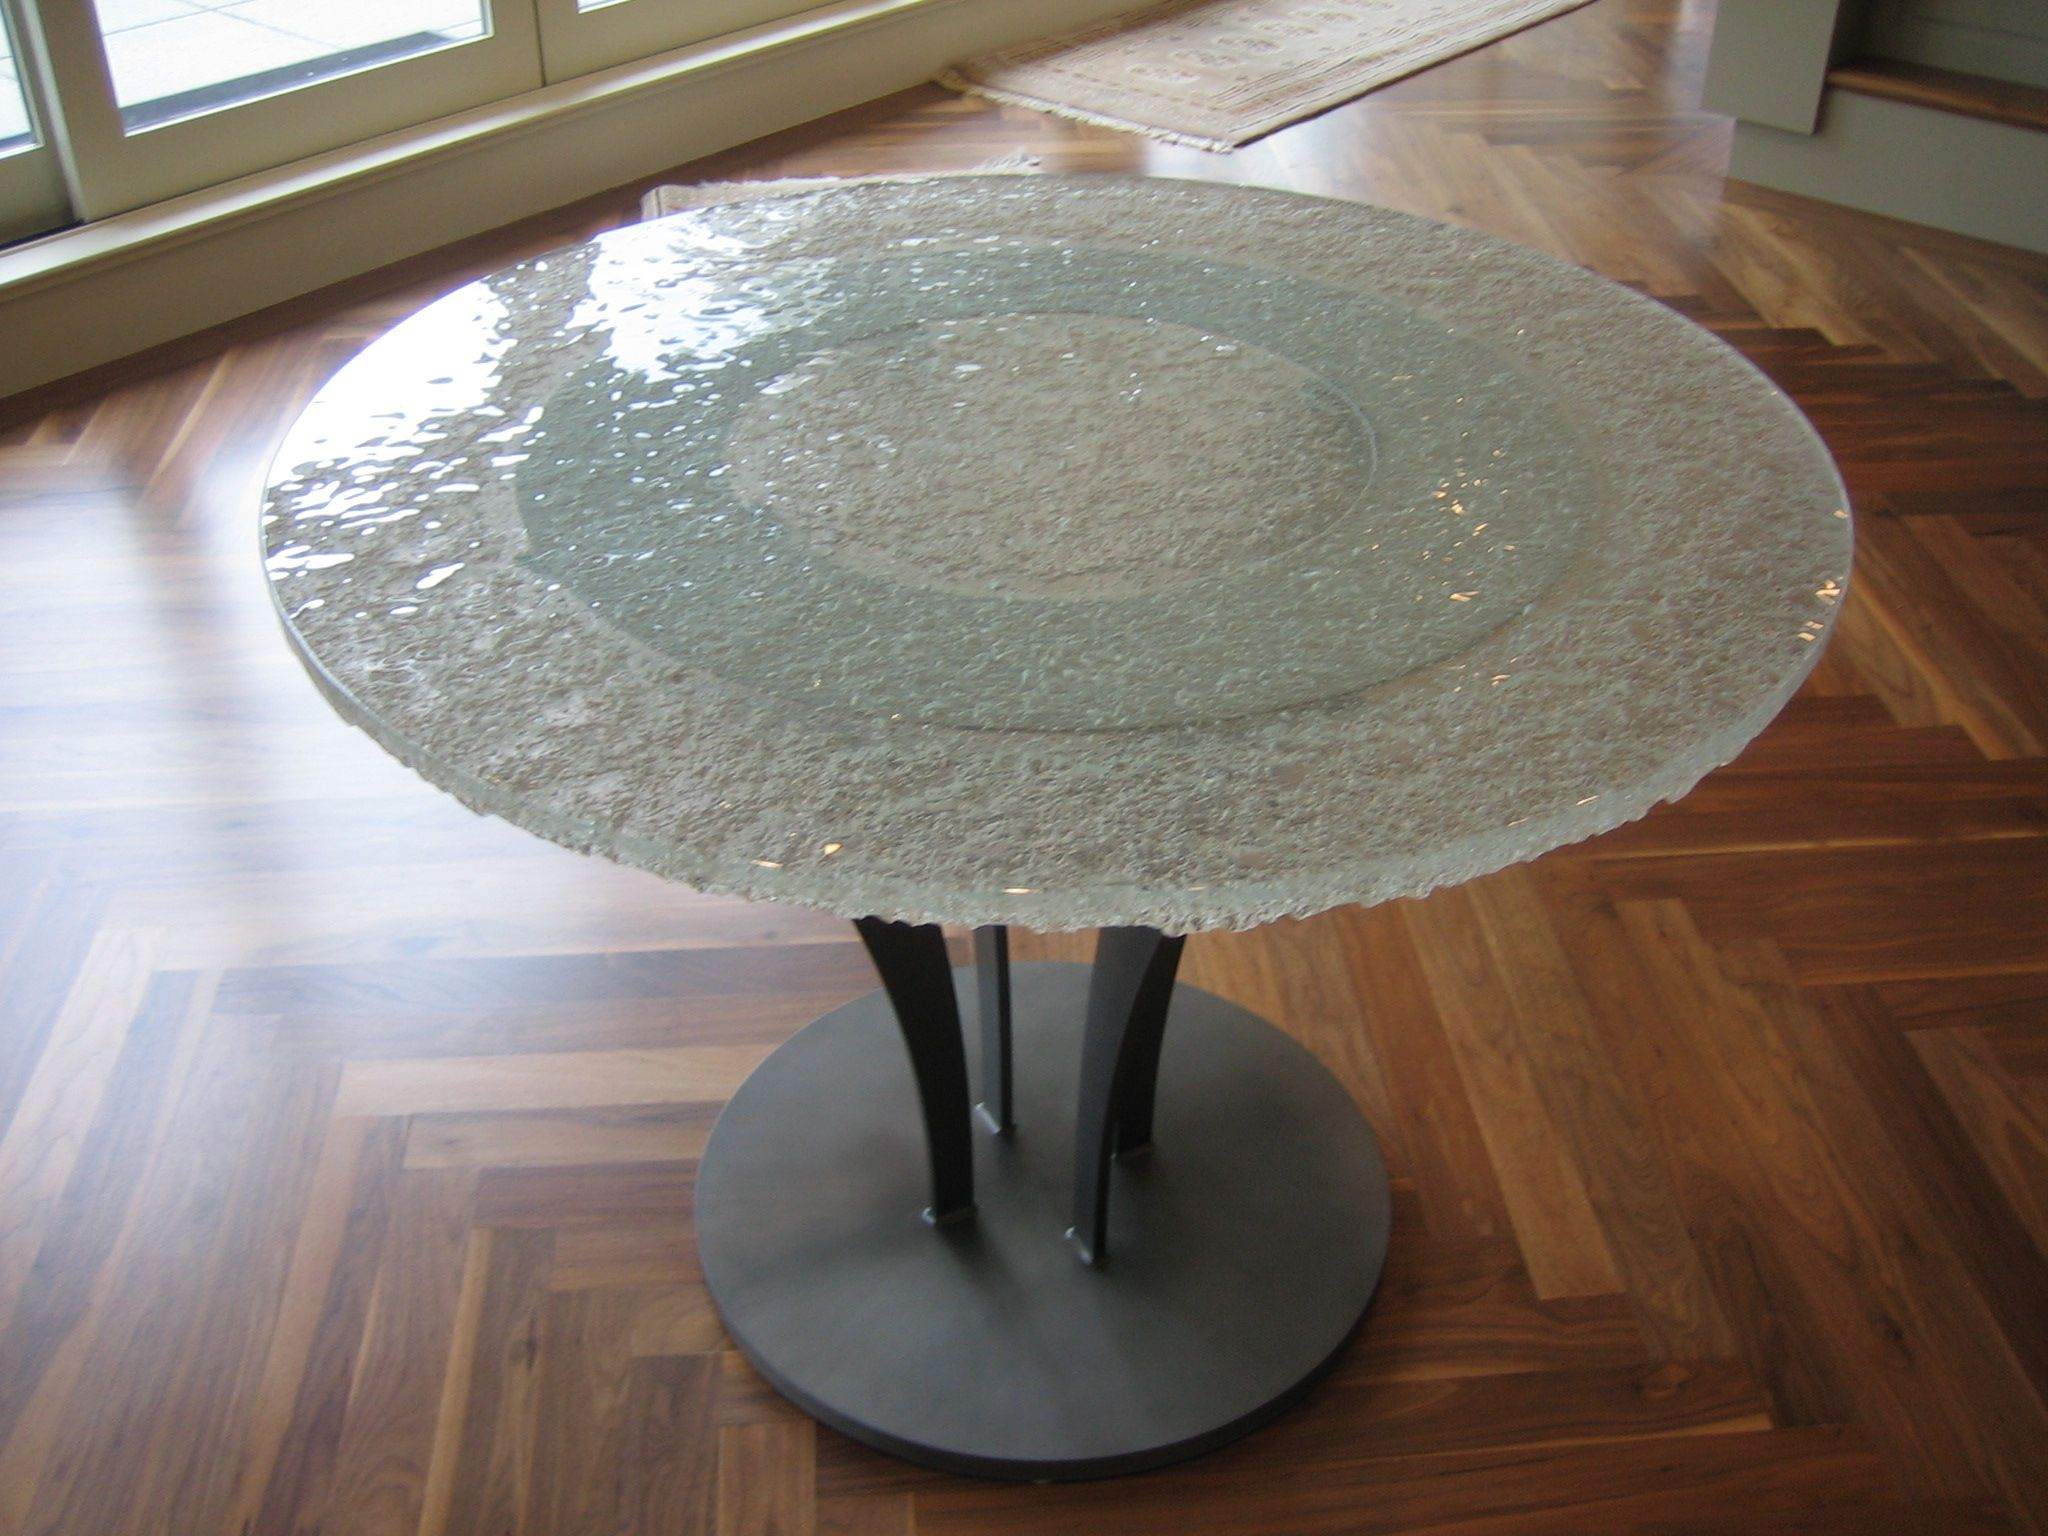 Crushed glass table top